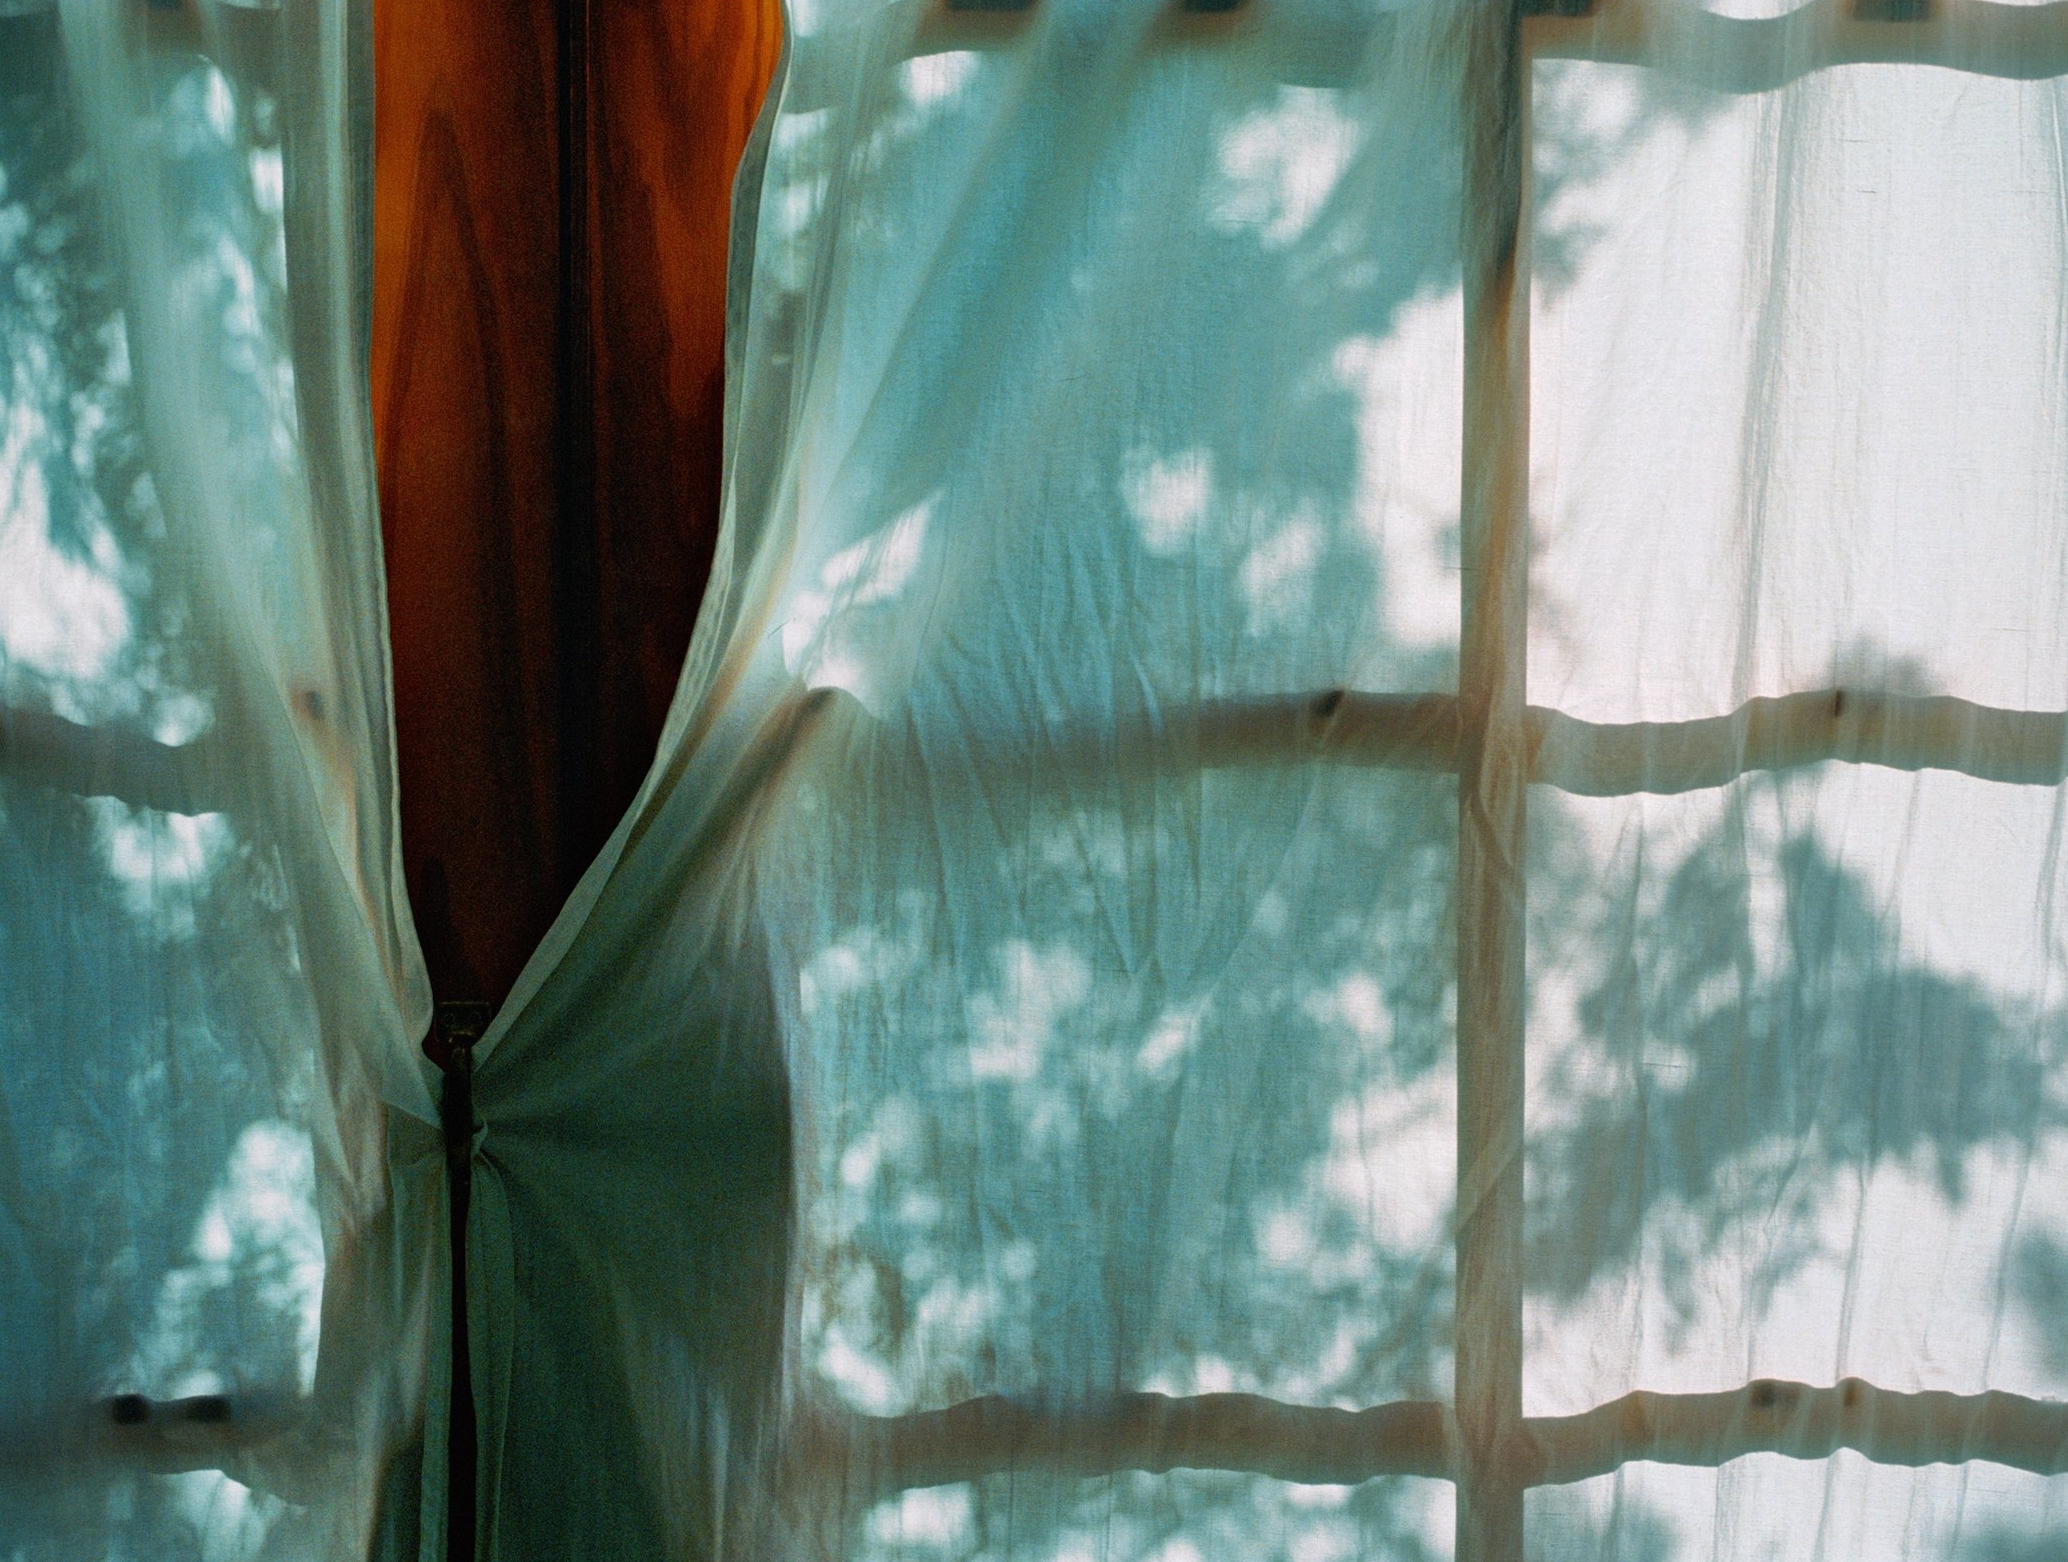 Untitled (Curtain II), 2004   /archival pigment   print, 22.5  x 30   inches  ,  edition of 5 plus 2 AP